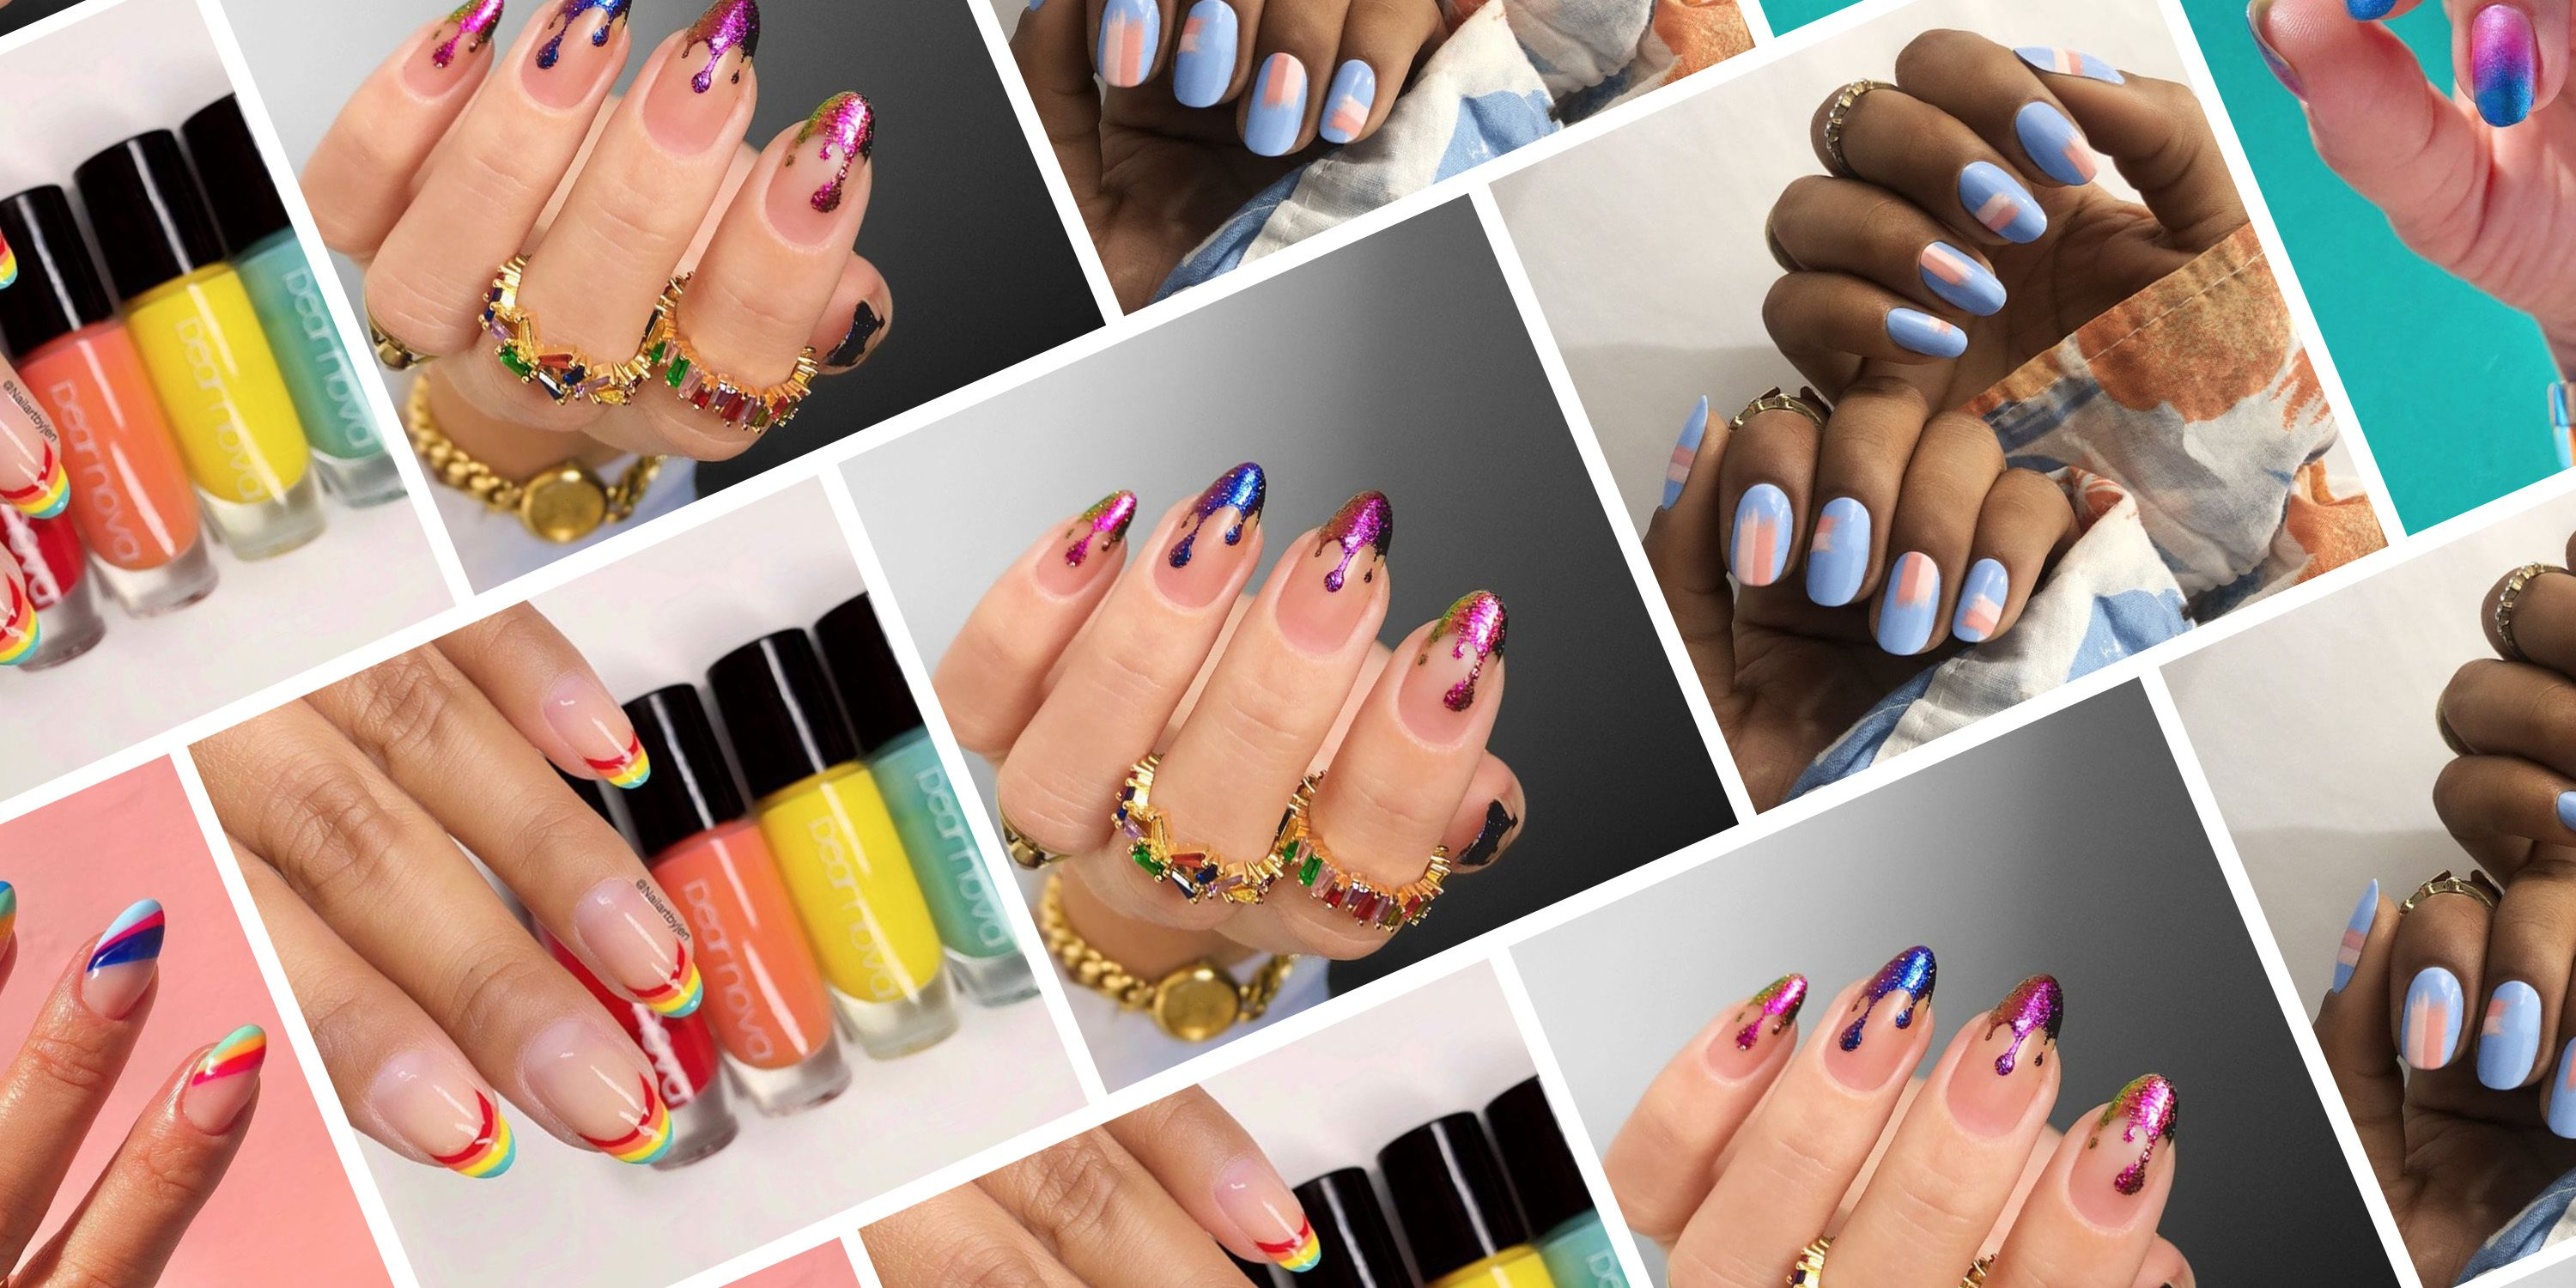 14 Nail Ideas for Pride Month (That Aren't All Rainbows)